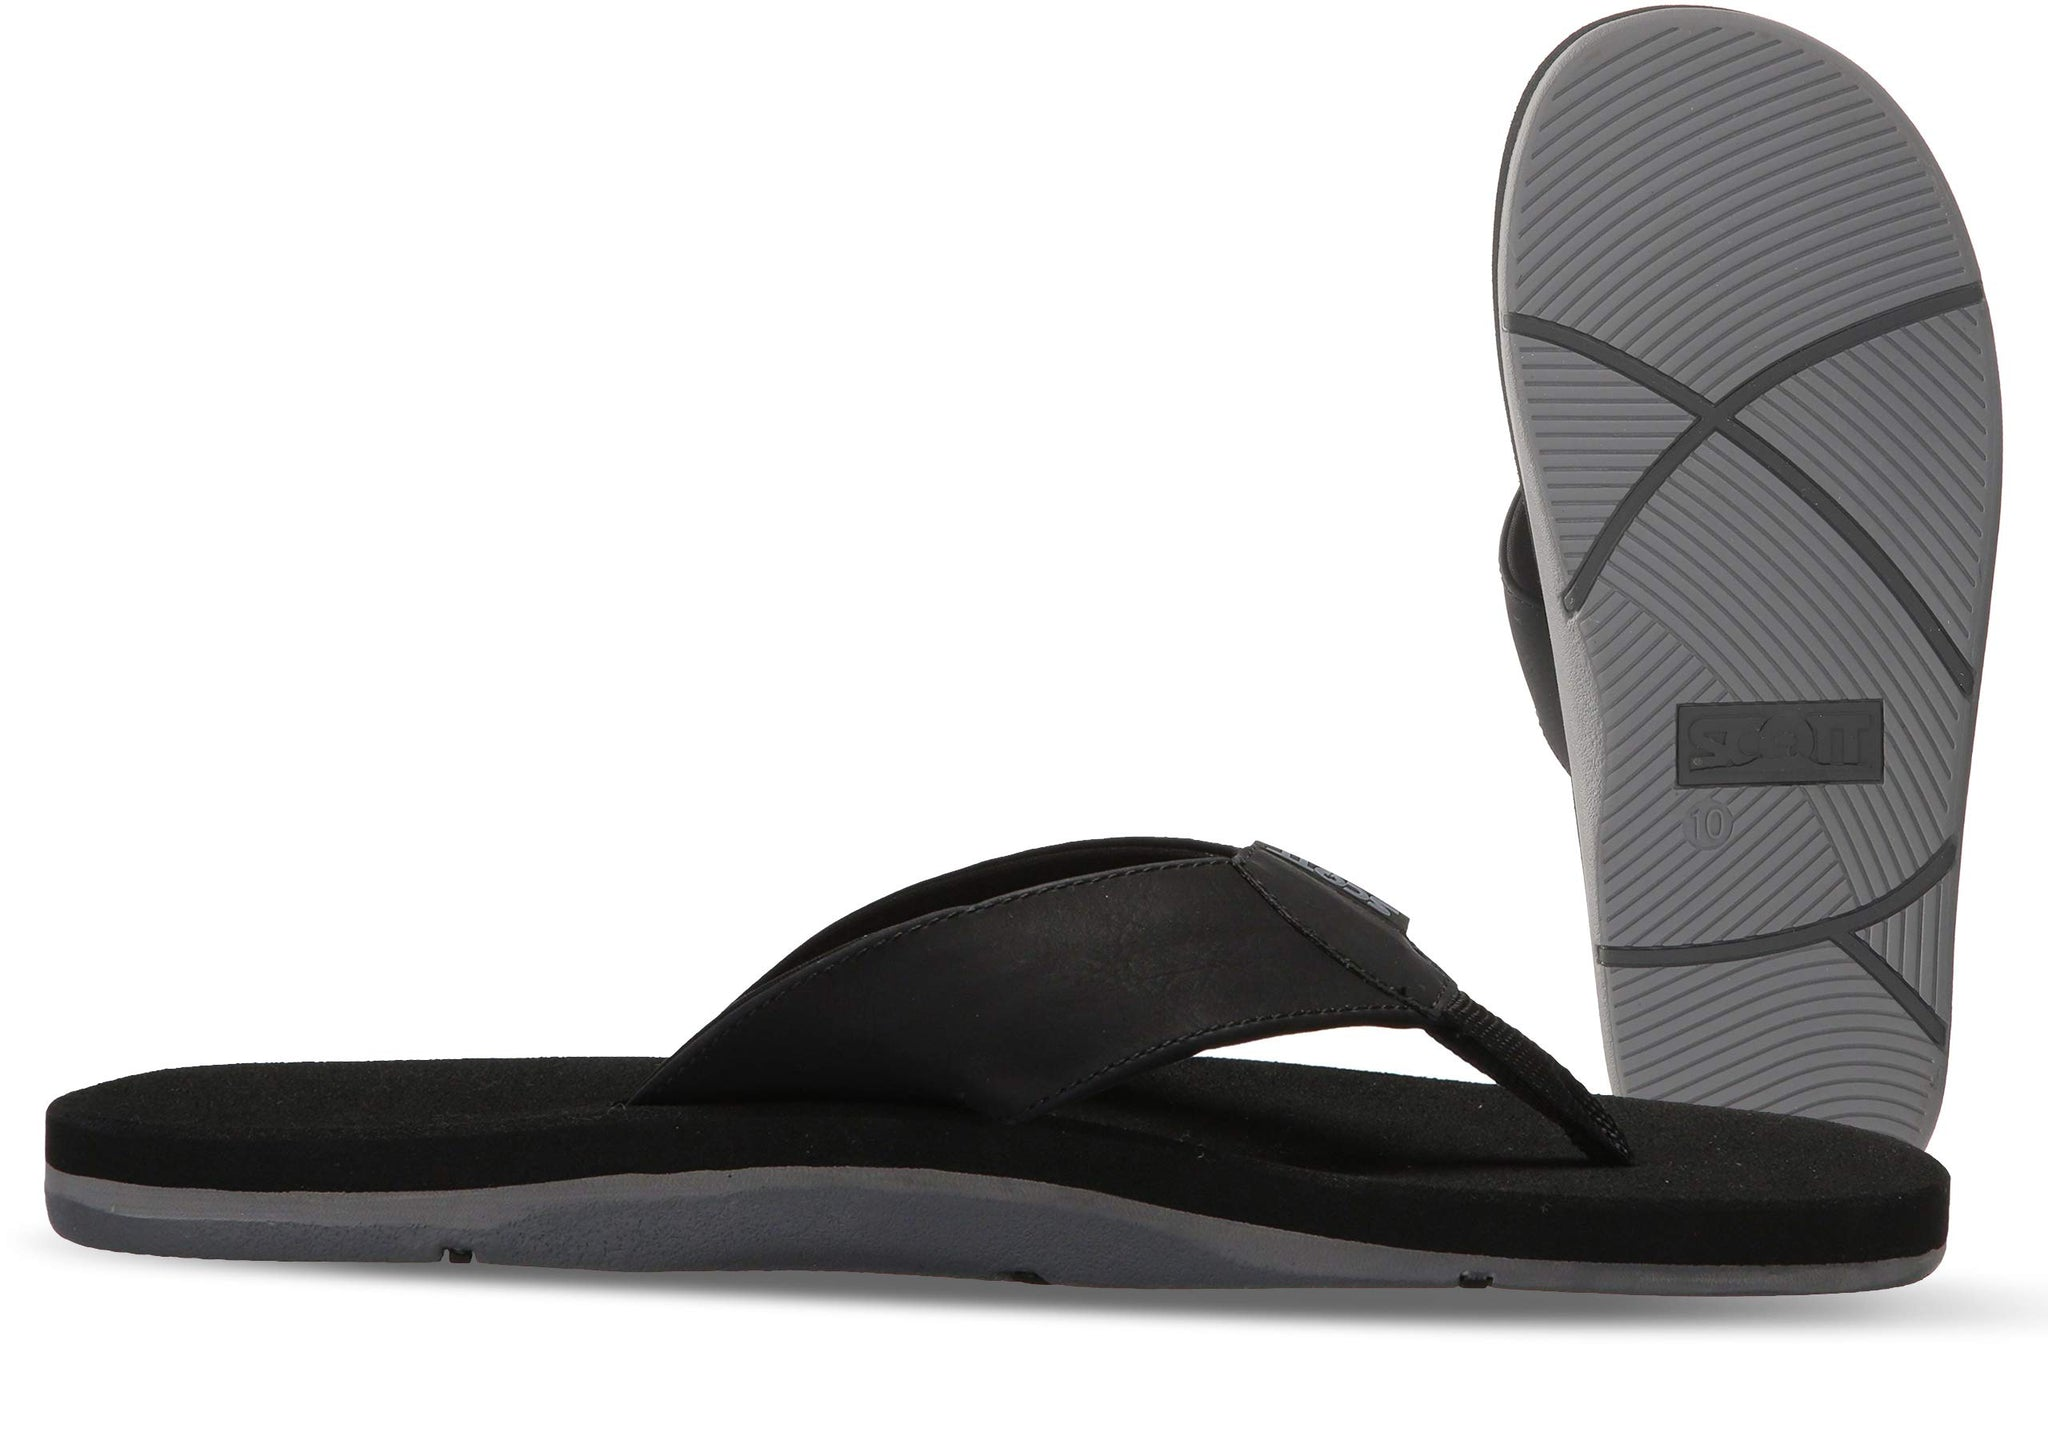 Scott Hawaii Men's Black Vegan Sandals | Neoprene Lined - AlohaShoes.com